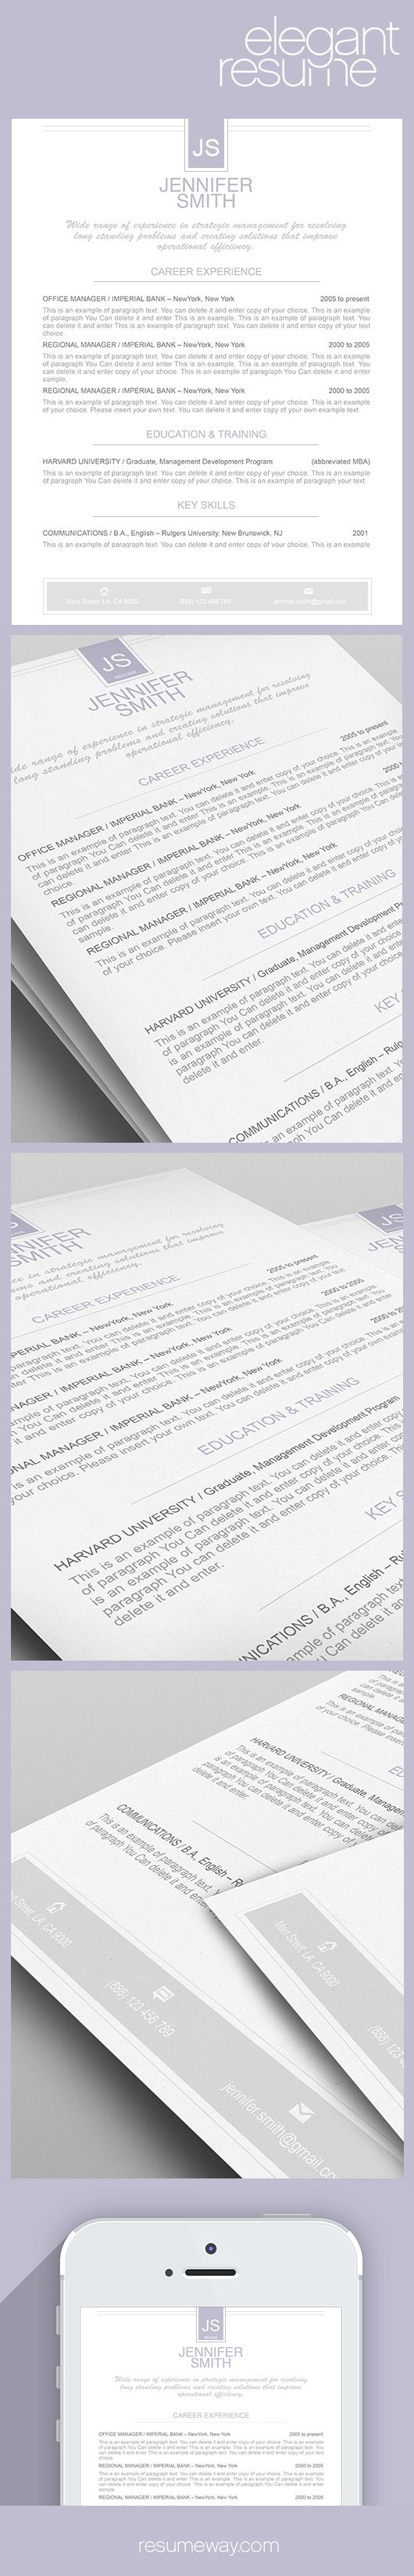 elegant resume template 110460 premium line of resume cover elegant resume template 110460 premium line of resume cover letter templates easy edit